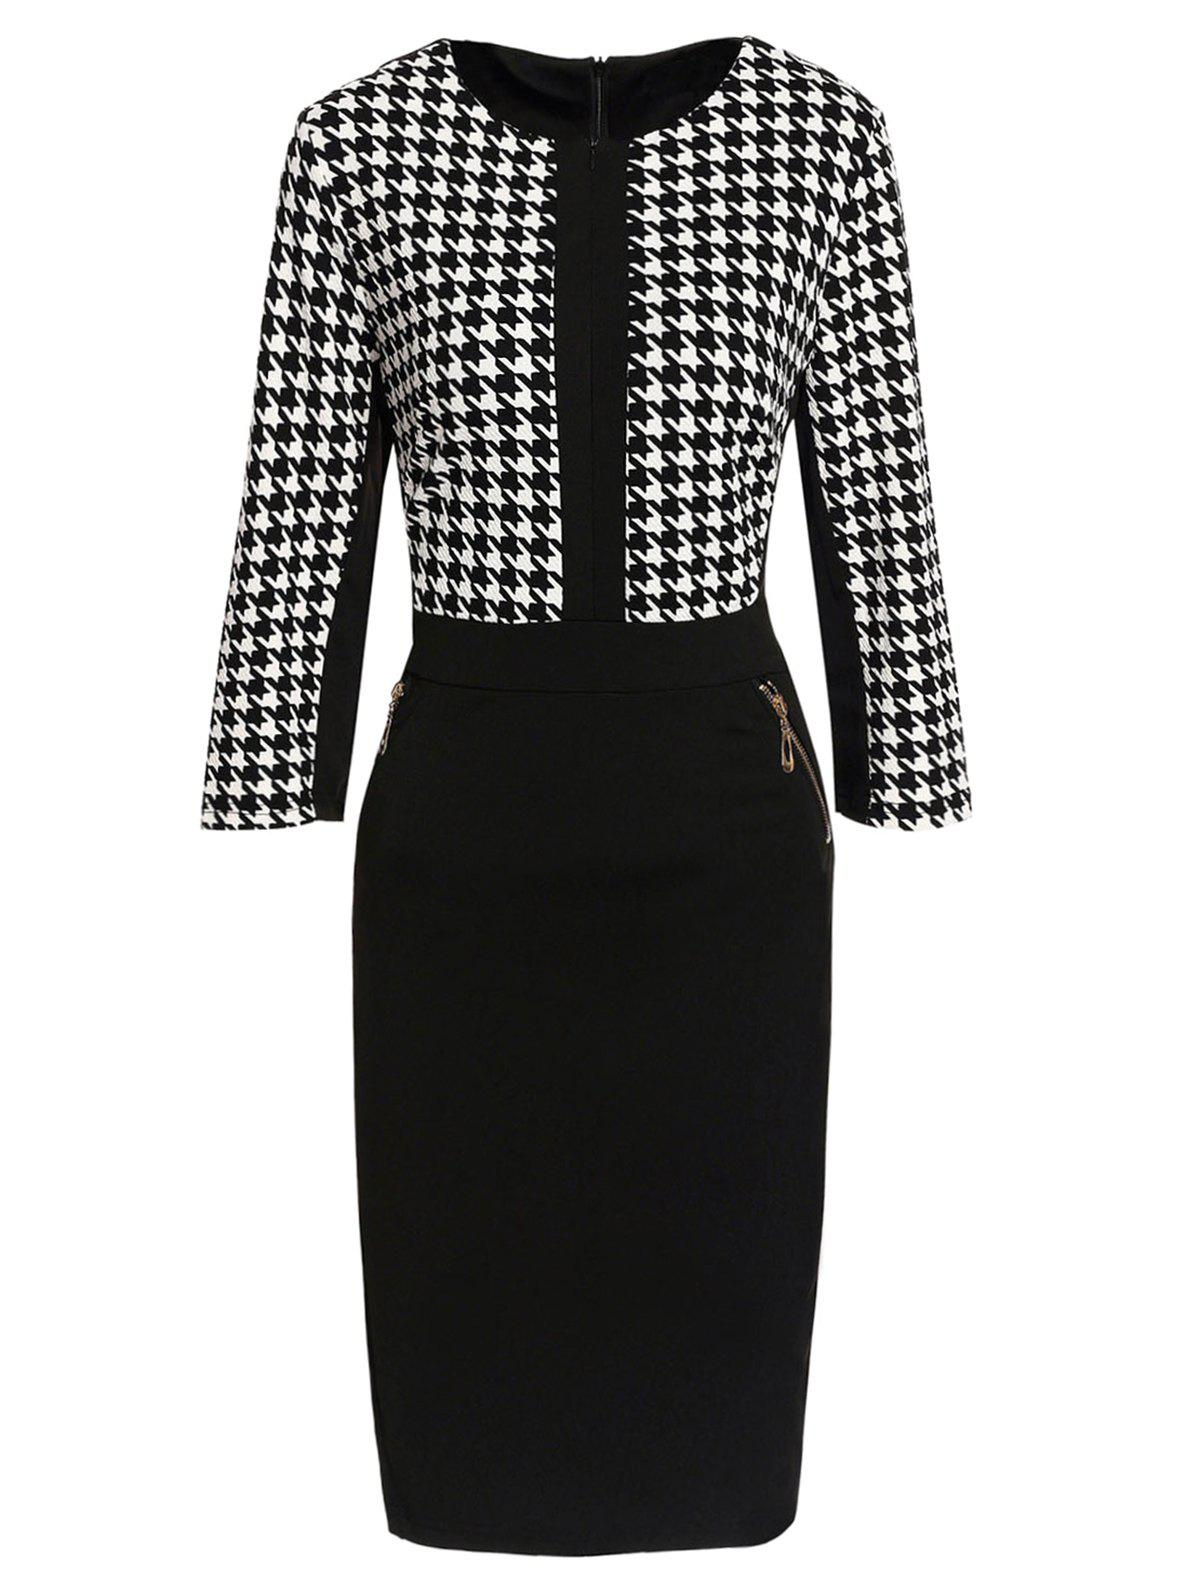 Zippered Houndstooth Bodycon Dress - WHITE/BLACK XL